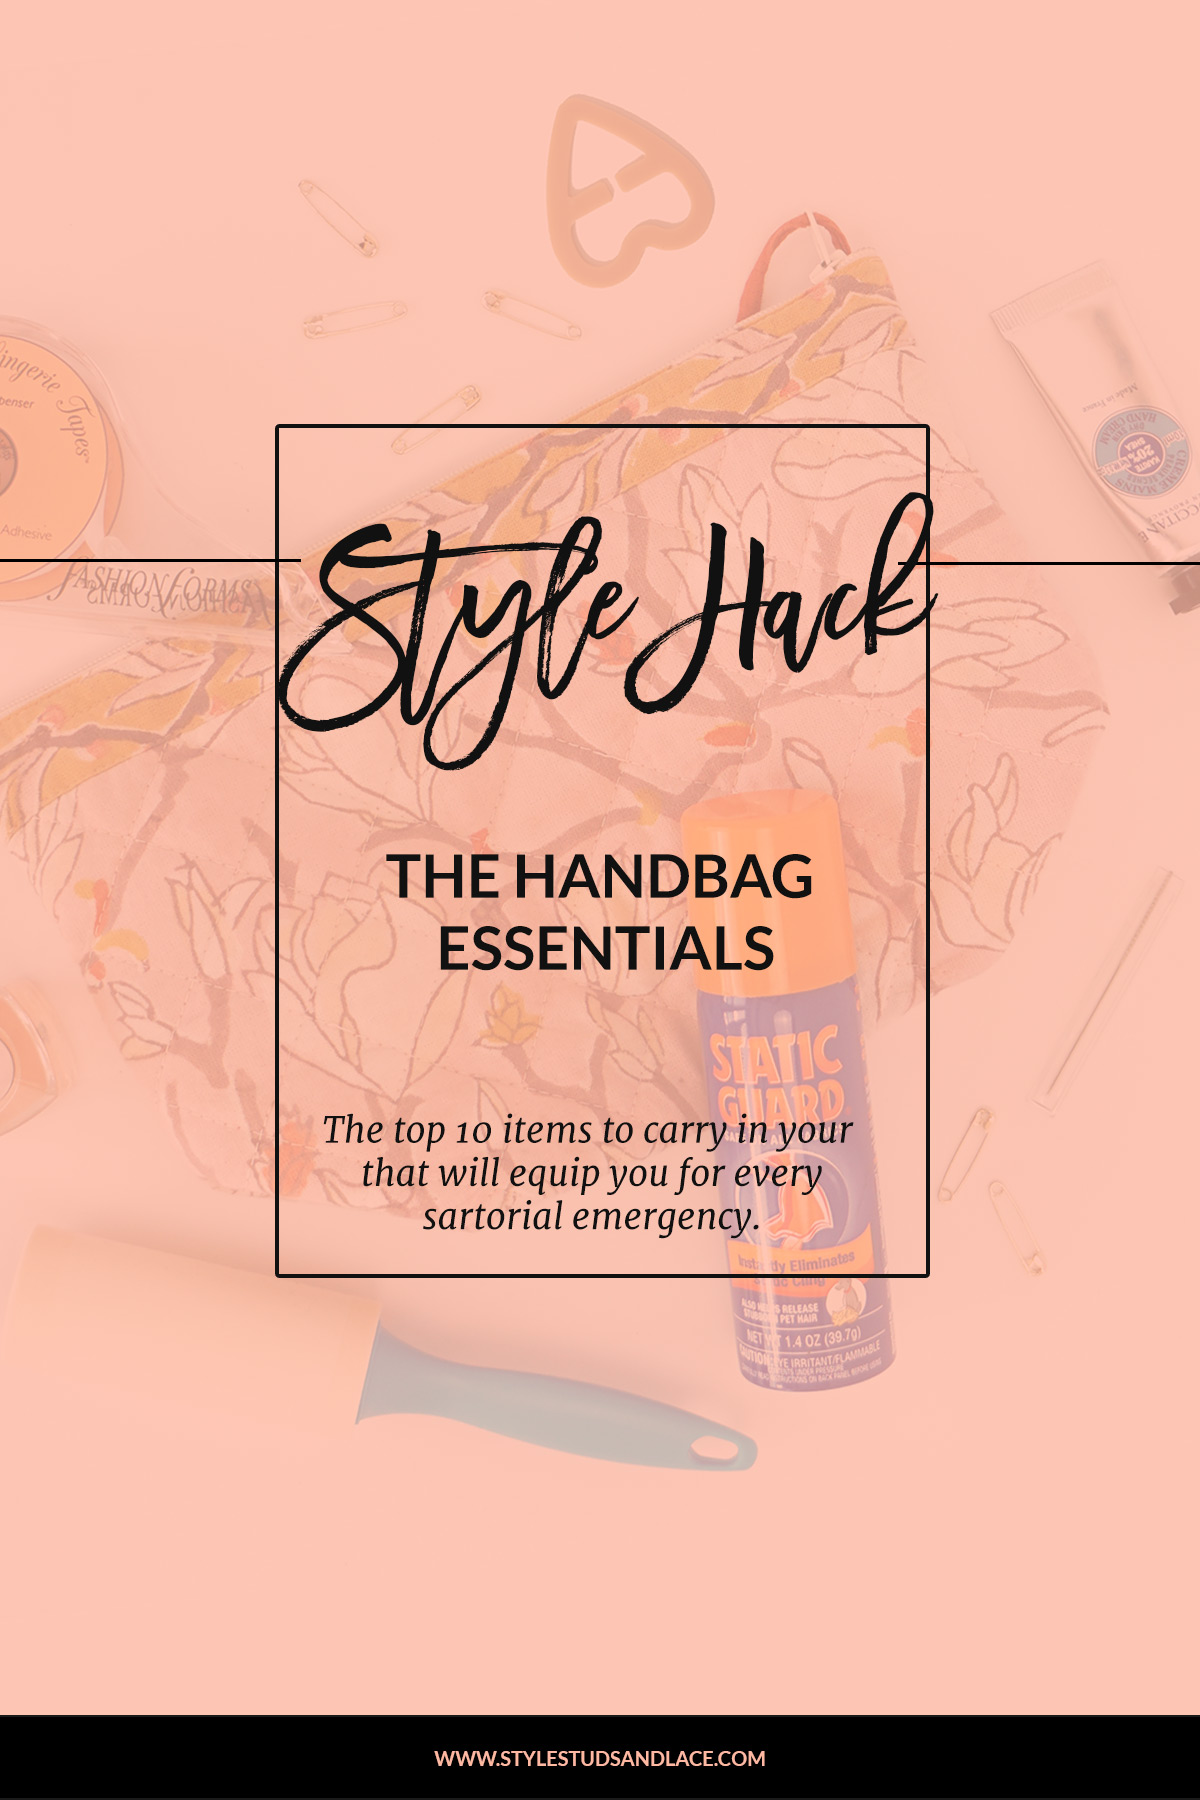 Top 10 handbag and purse essentials | The most important items to carry in your purse or handbag to equip you for every sartorial emergency